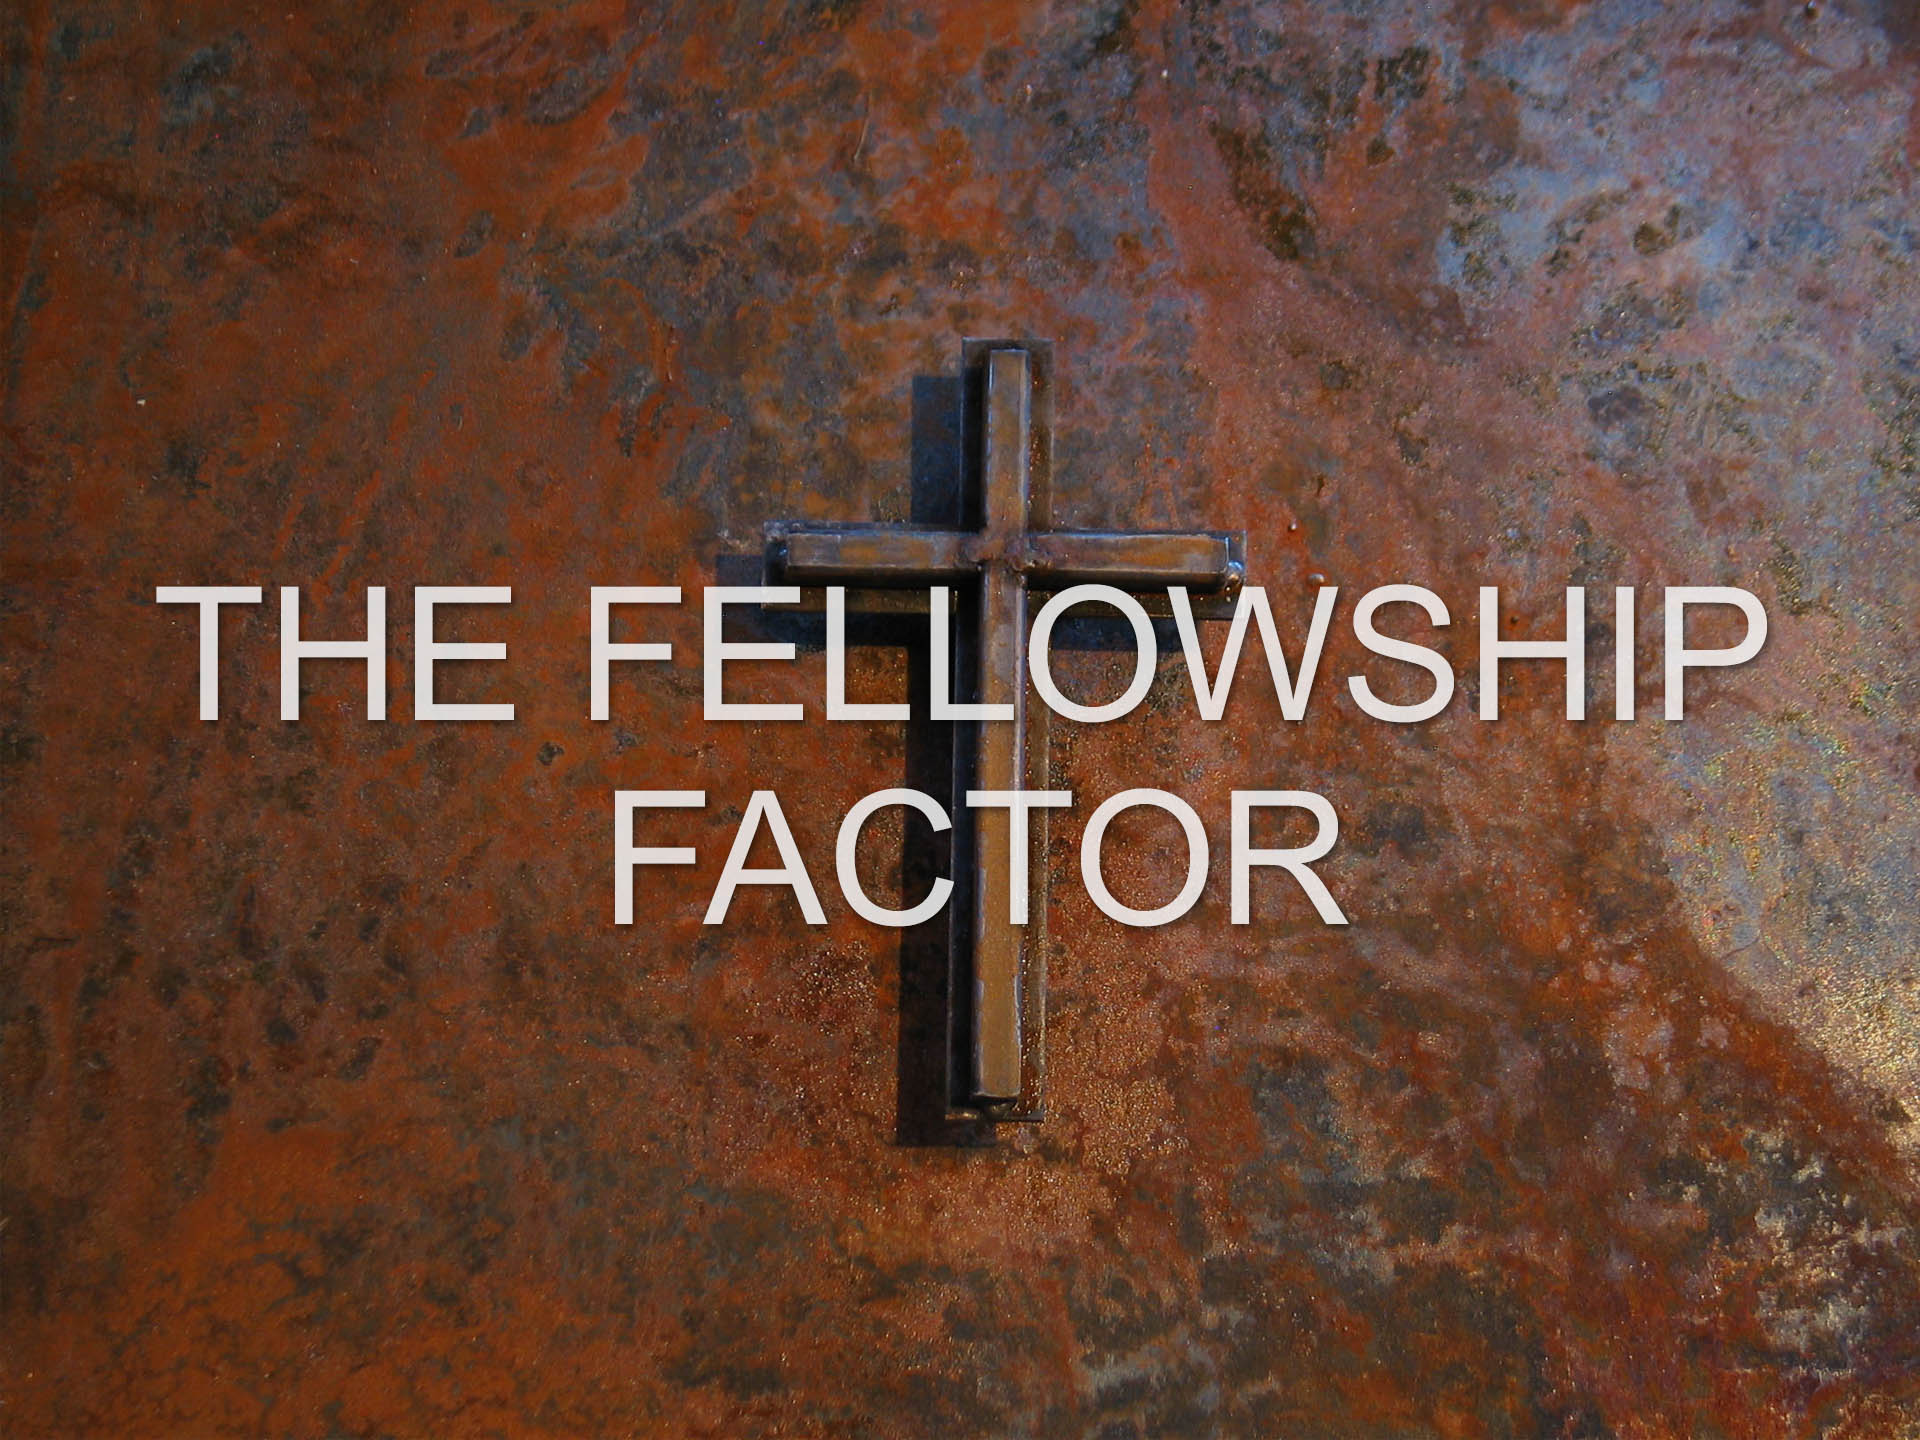 The Fellowship Factor